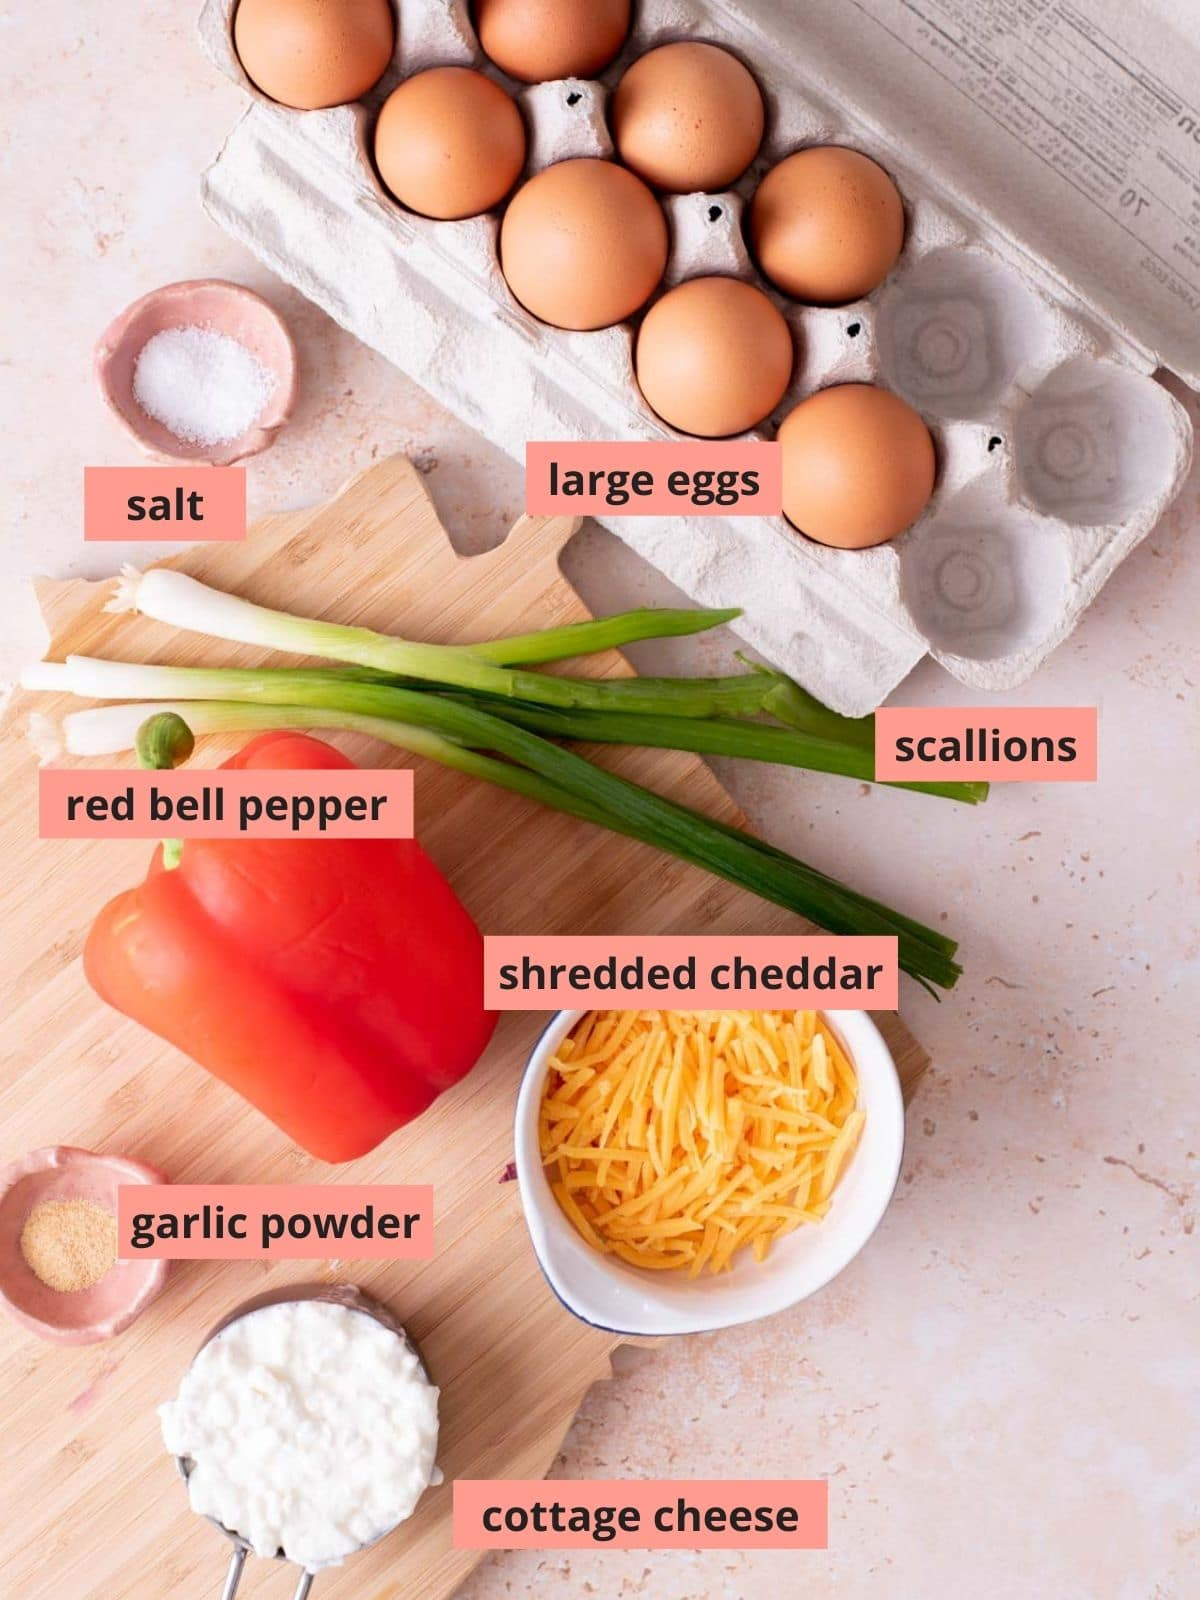 Labeled ingredients used to make egg bites